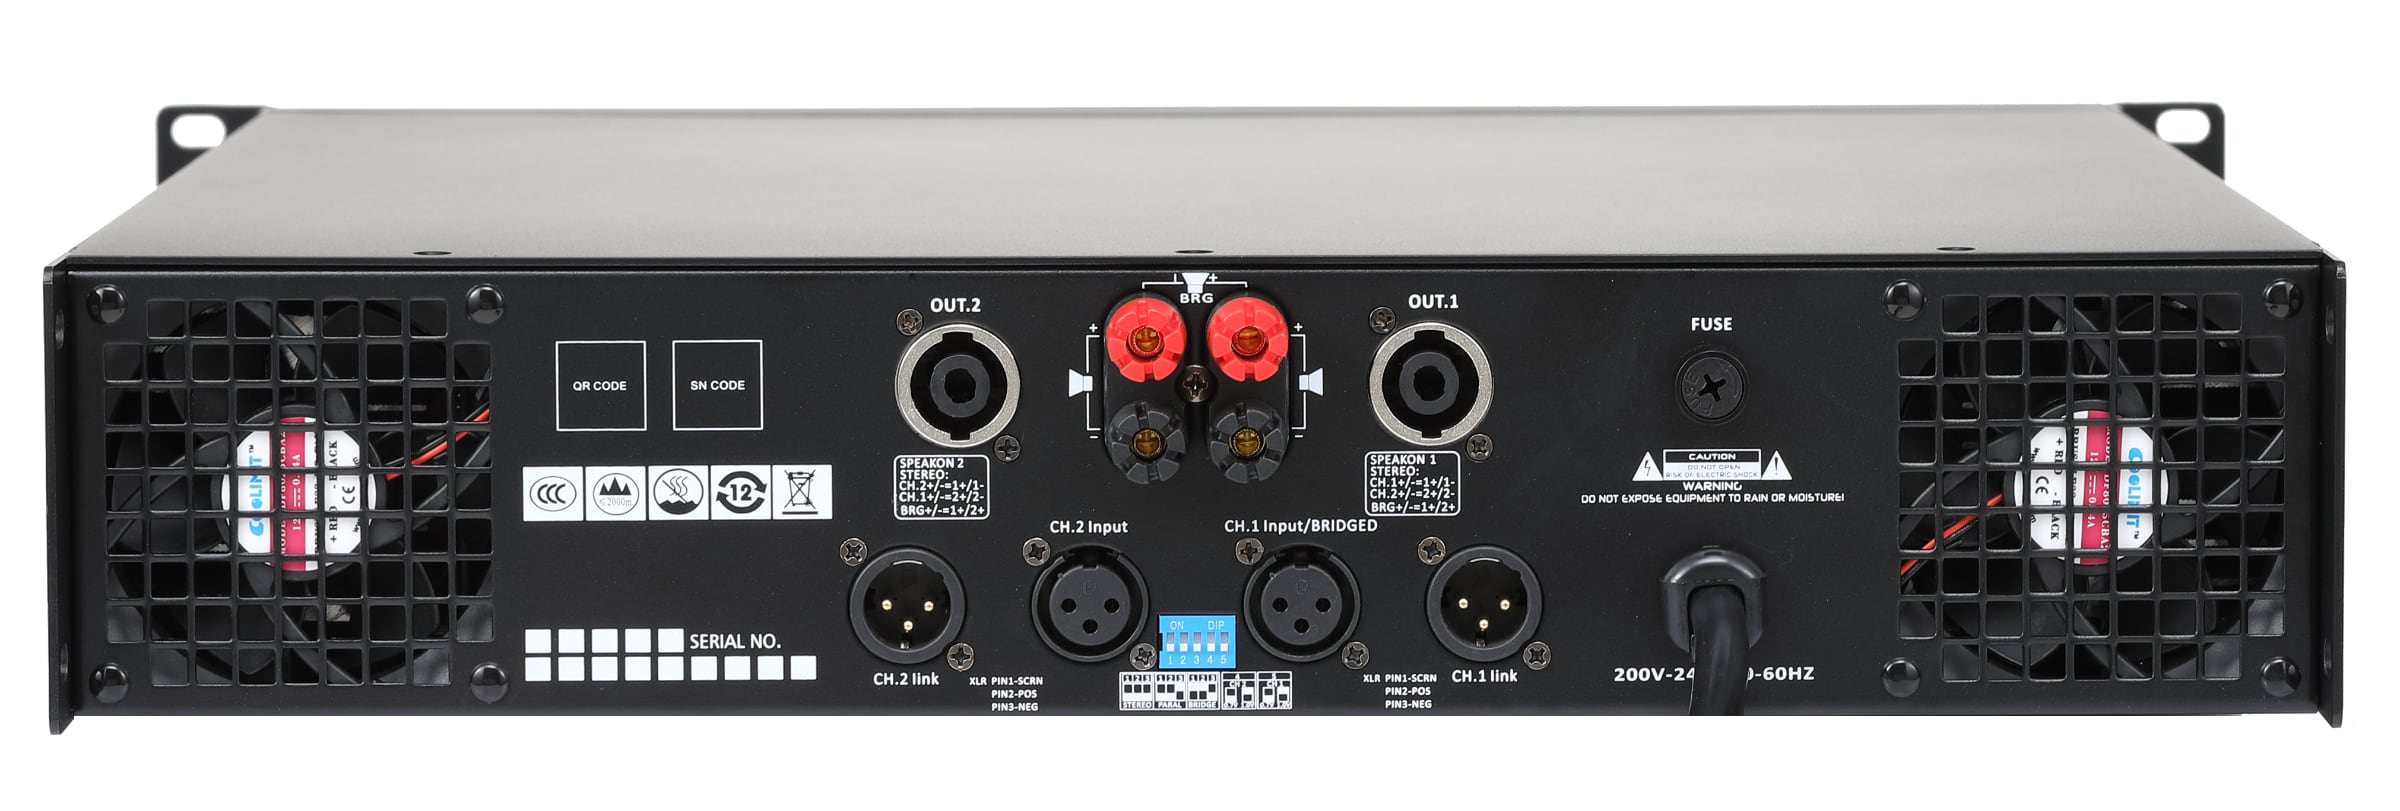 Công suất AAP DX-10002